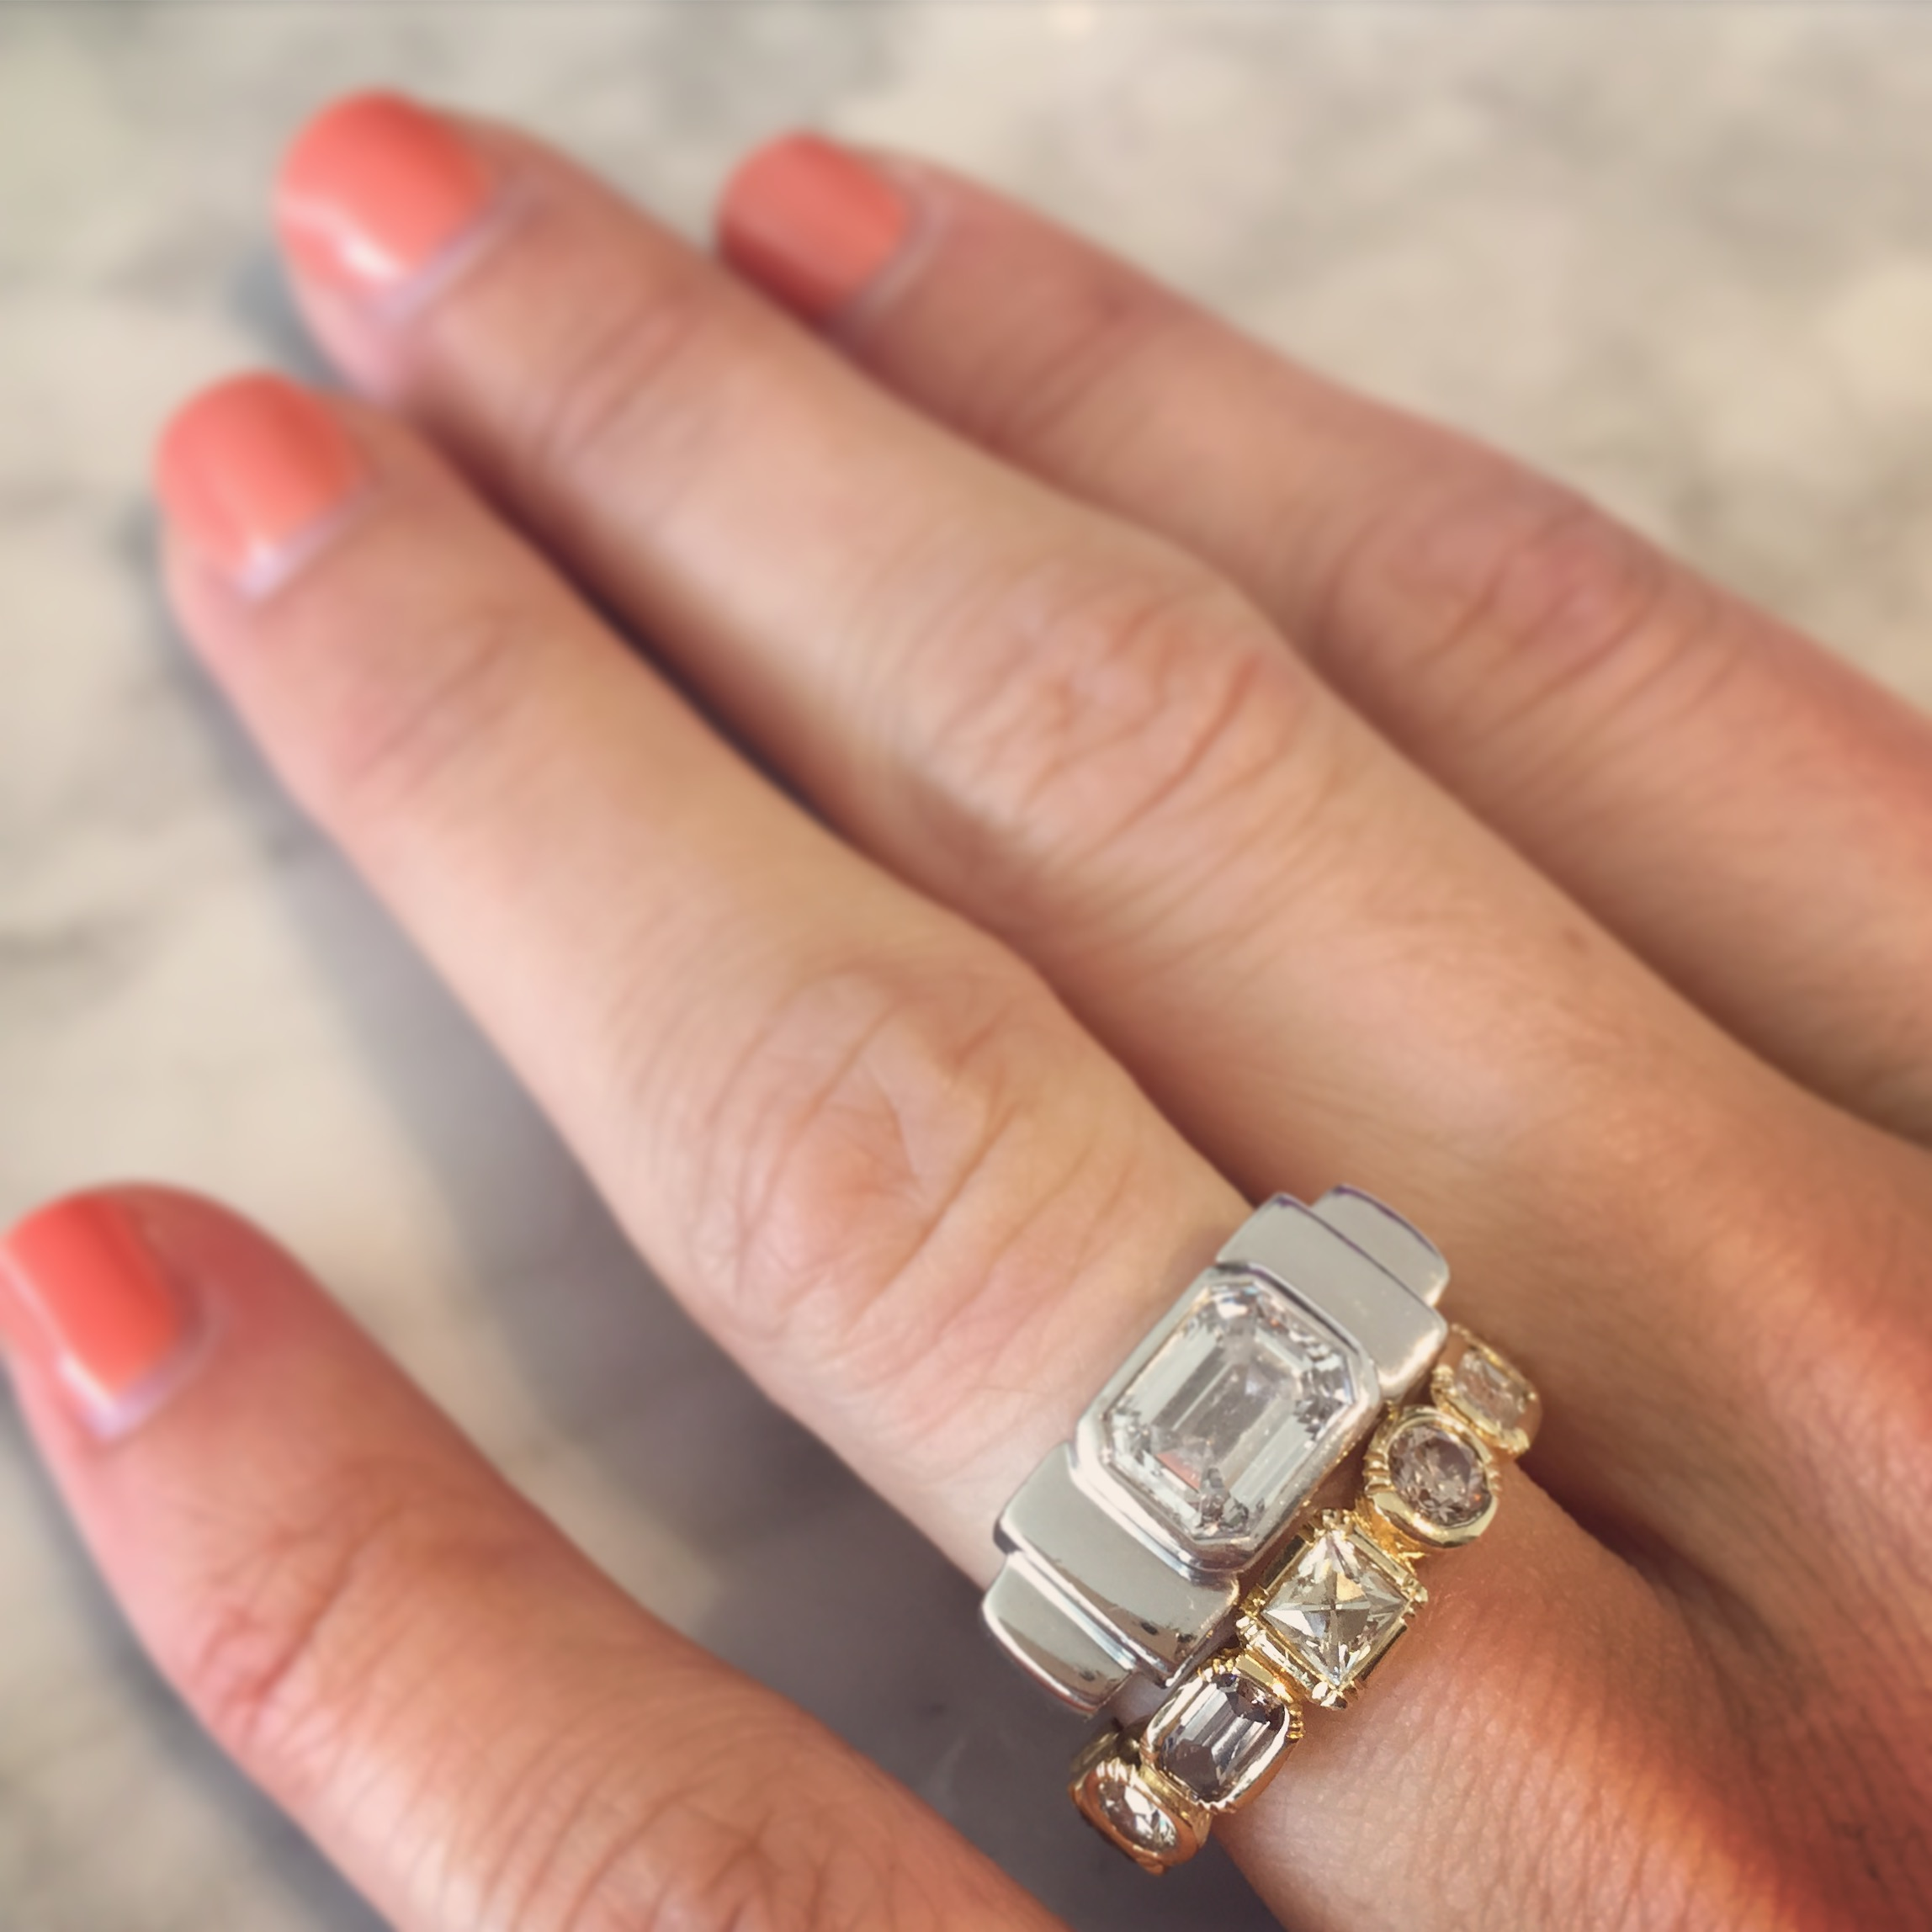 White Gold Emerald Cut Engagement Ring and Yellow Gold Alternate Wedding Ring